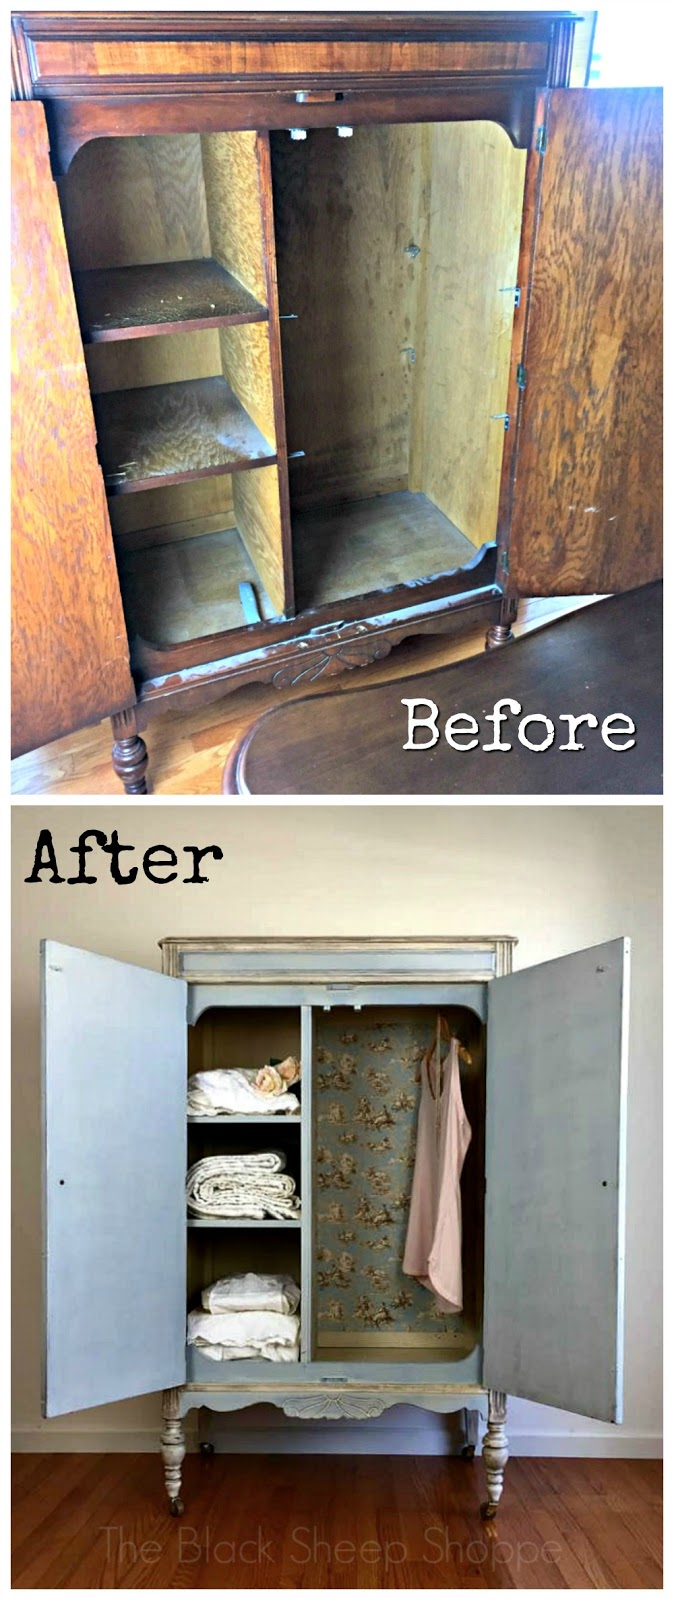 Before and after photos of armoire